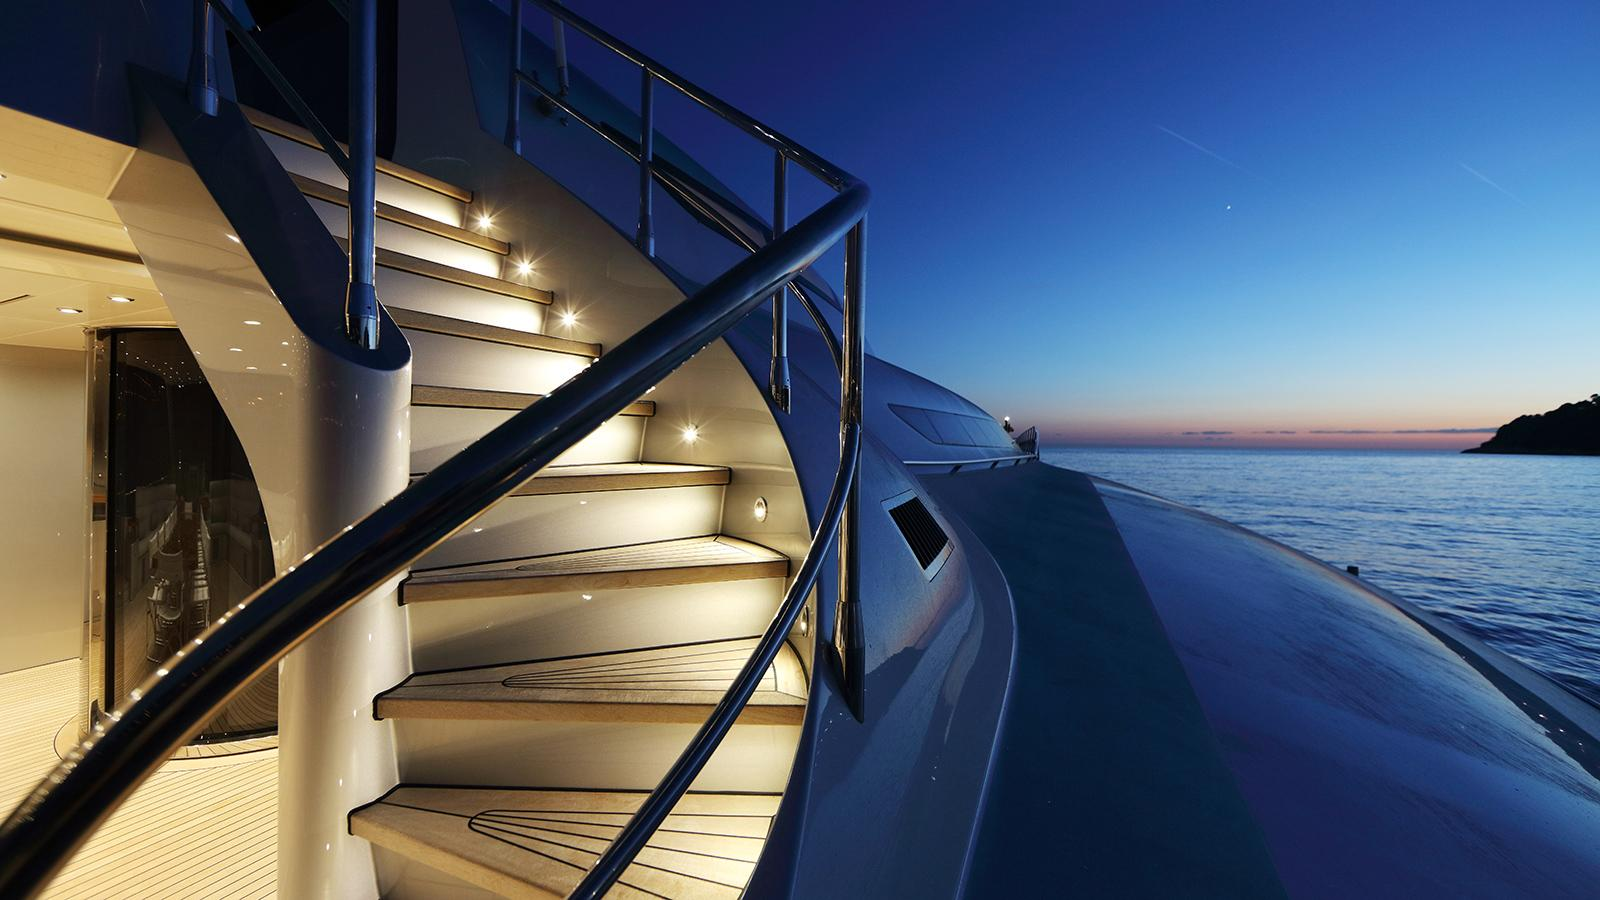 galaxy of happiness trimaran yacht latitude 2016 53m side stairs